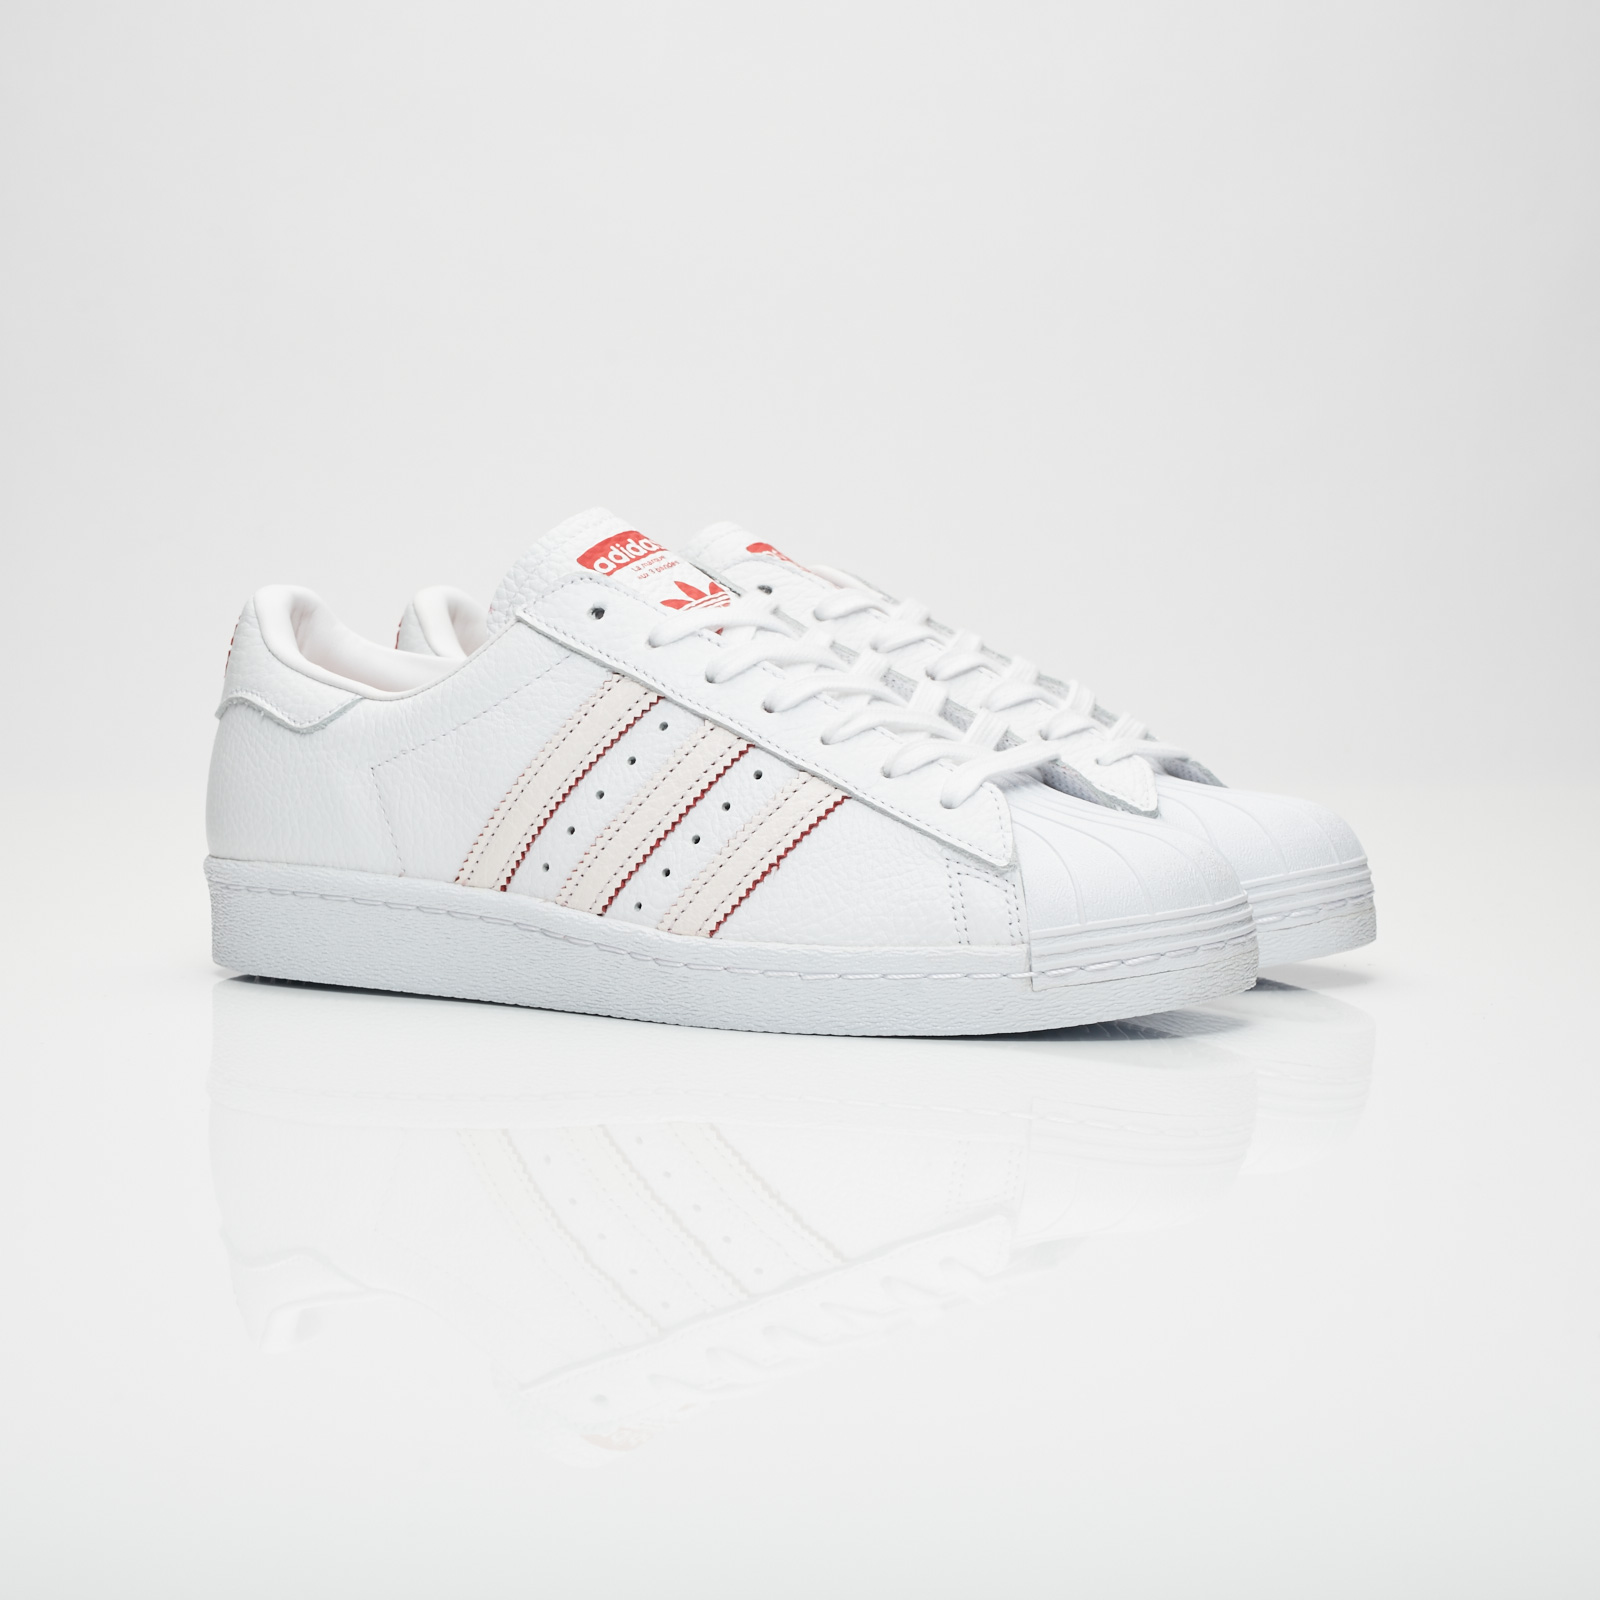 huge discount 226a8 ec88e adidas Originals Superstar 80s Chinese New Year